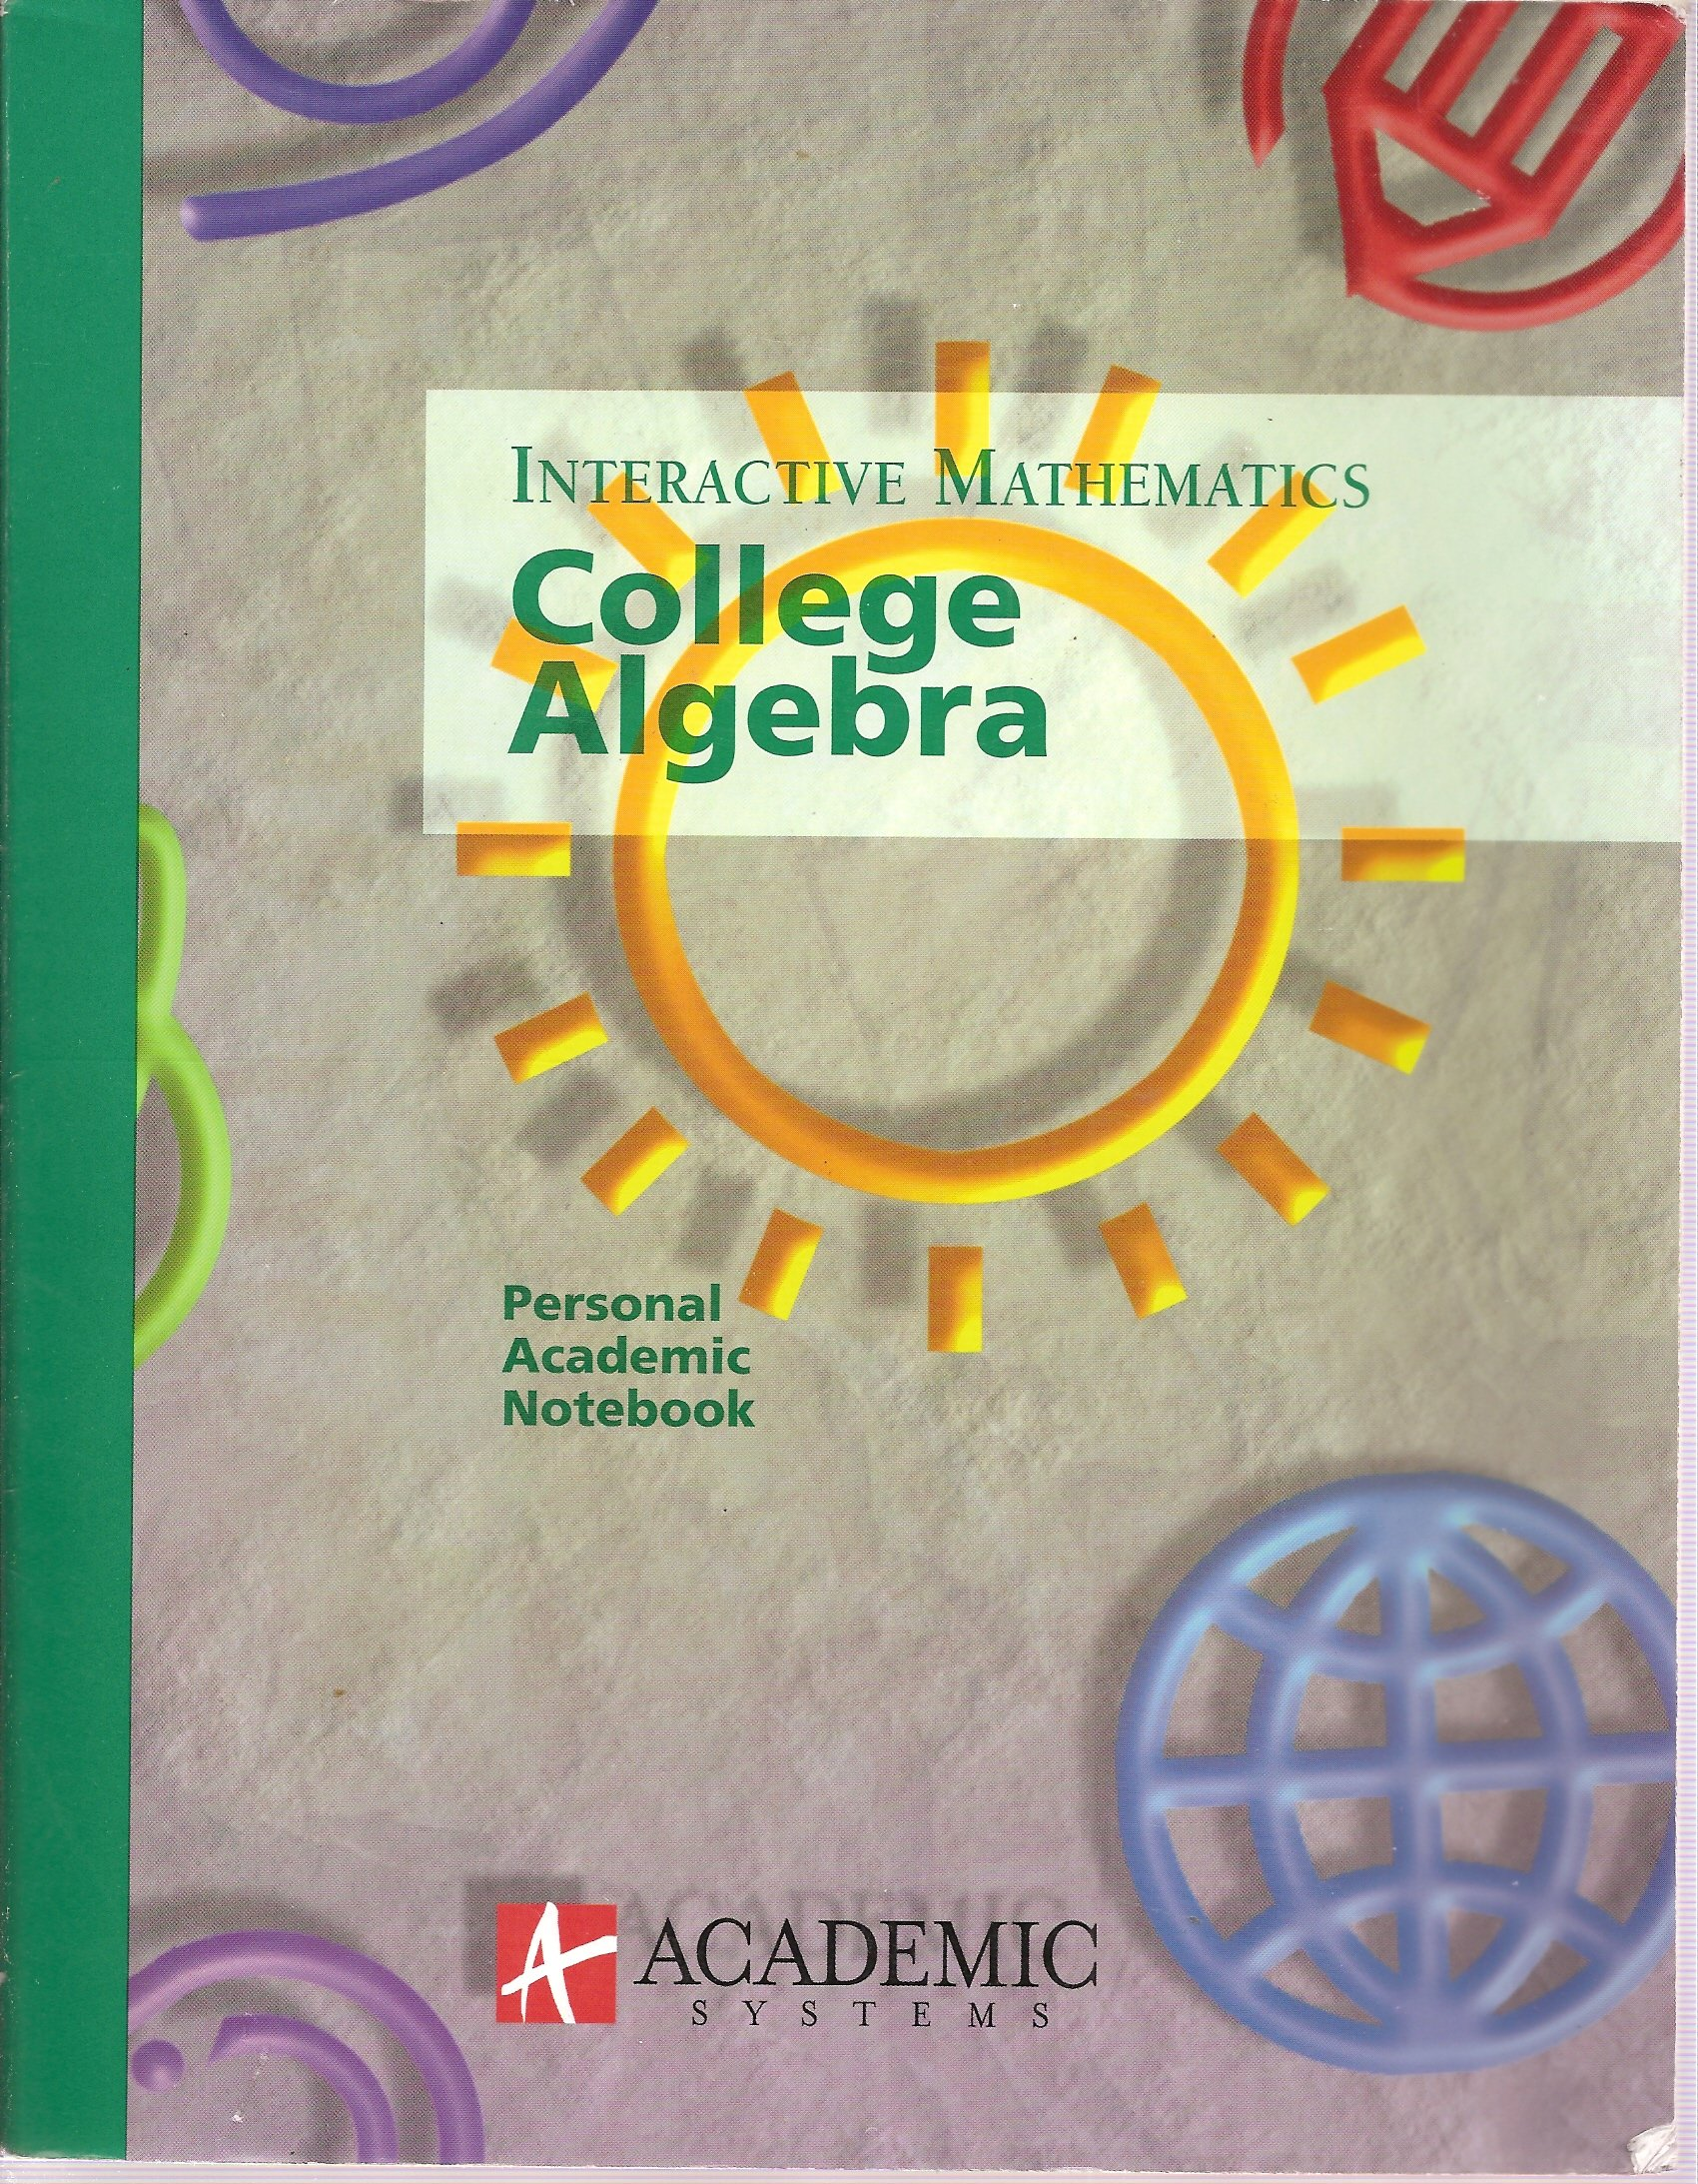 Download Interactive Mathematics: College Algebra, Personal Academic Notebook with CDs for Parts 1 & 2 Including CD for Client Installer pdf